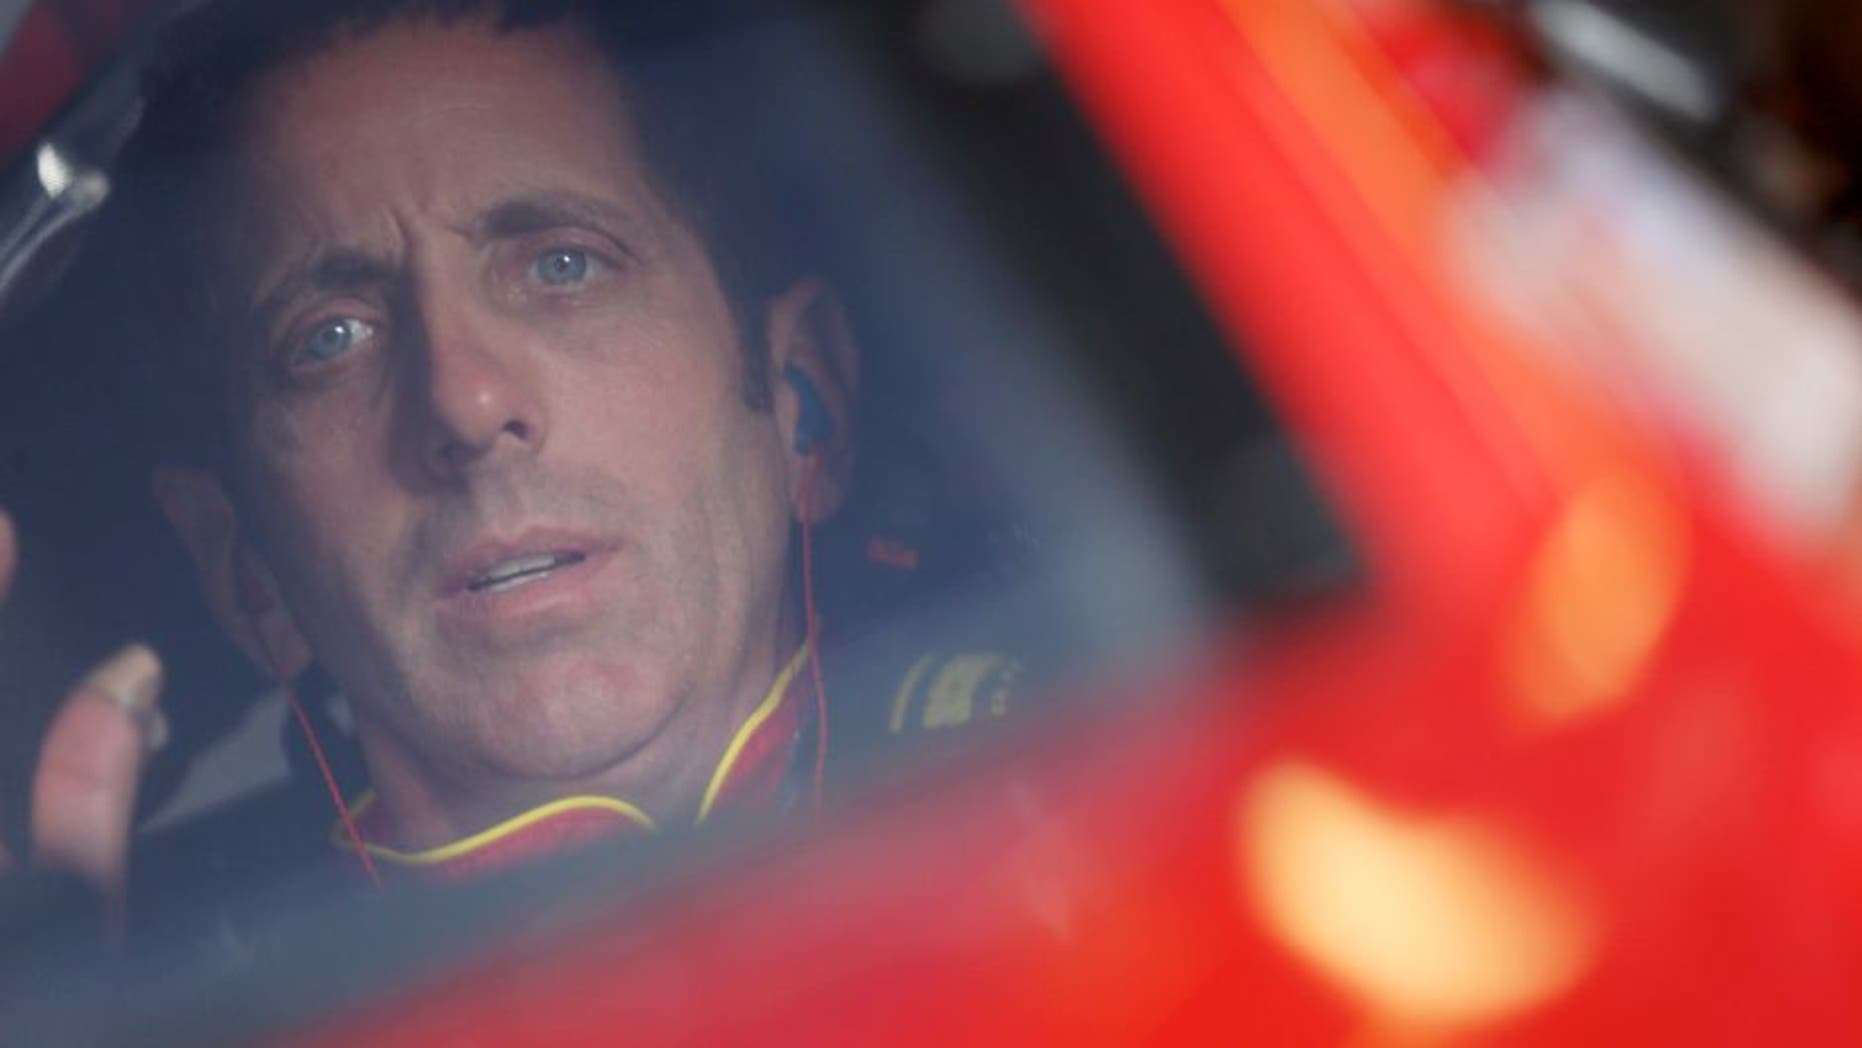 Greg Biffle, driver of the #16 Cheez-It Ford, sits in his car during practice for the NASCAR Sprint Cup Series CampingWorld.com 500 at Talladega Superspeedway on October 23, 2015 in Talladega, Alabama. (Photo by Chris Graythen/NASCAR via Getty Images)